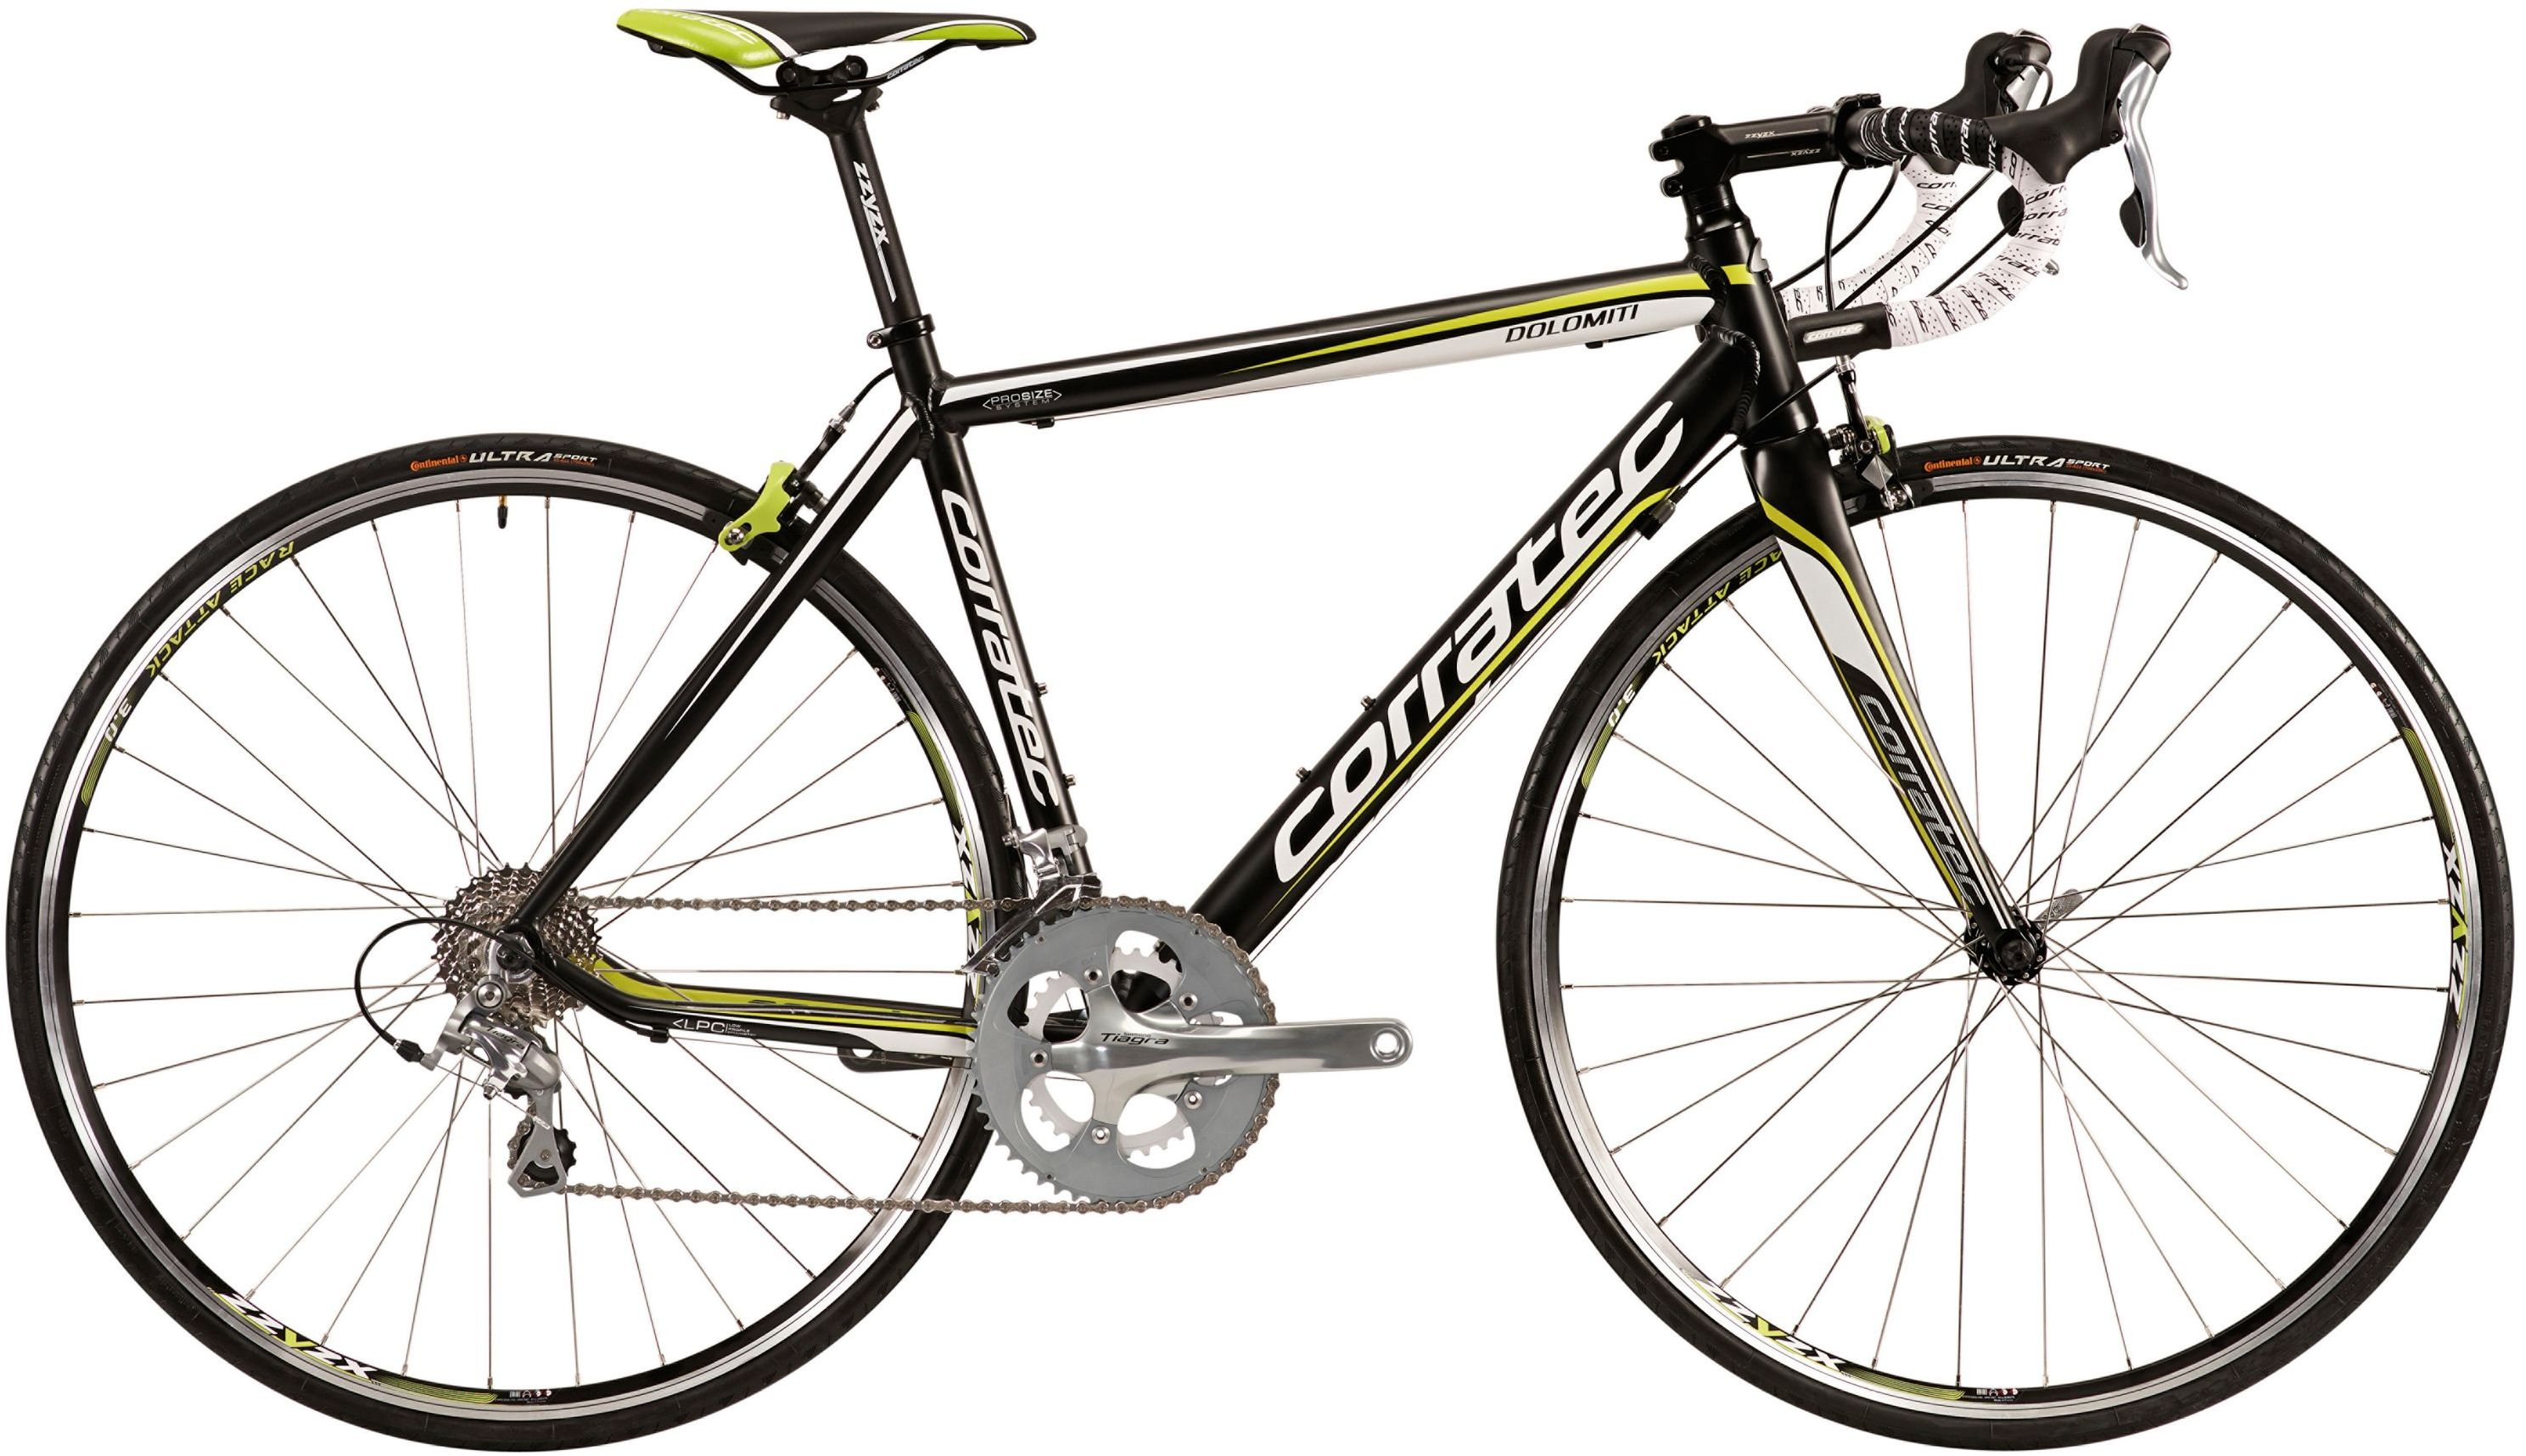 Corratec dolomiti 105 limited edition road bike 2013 review the.